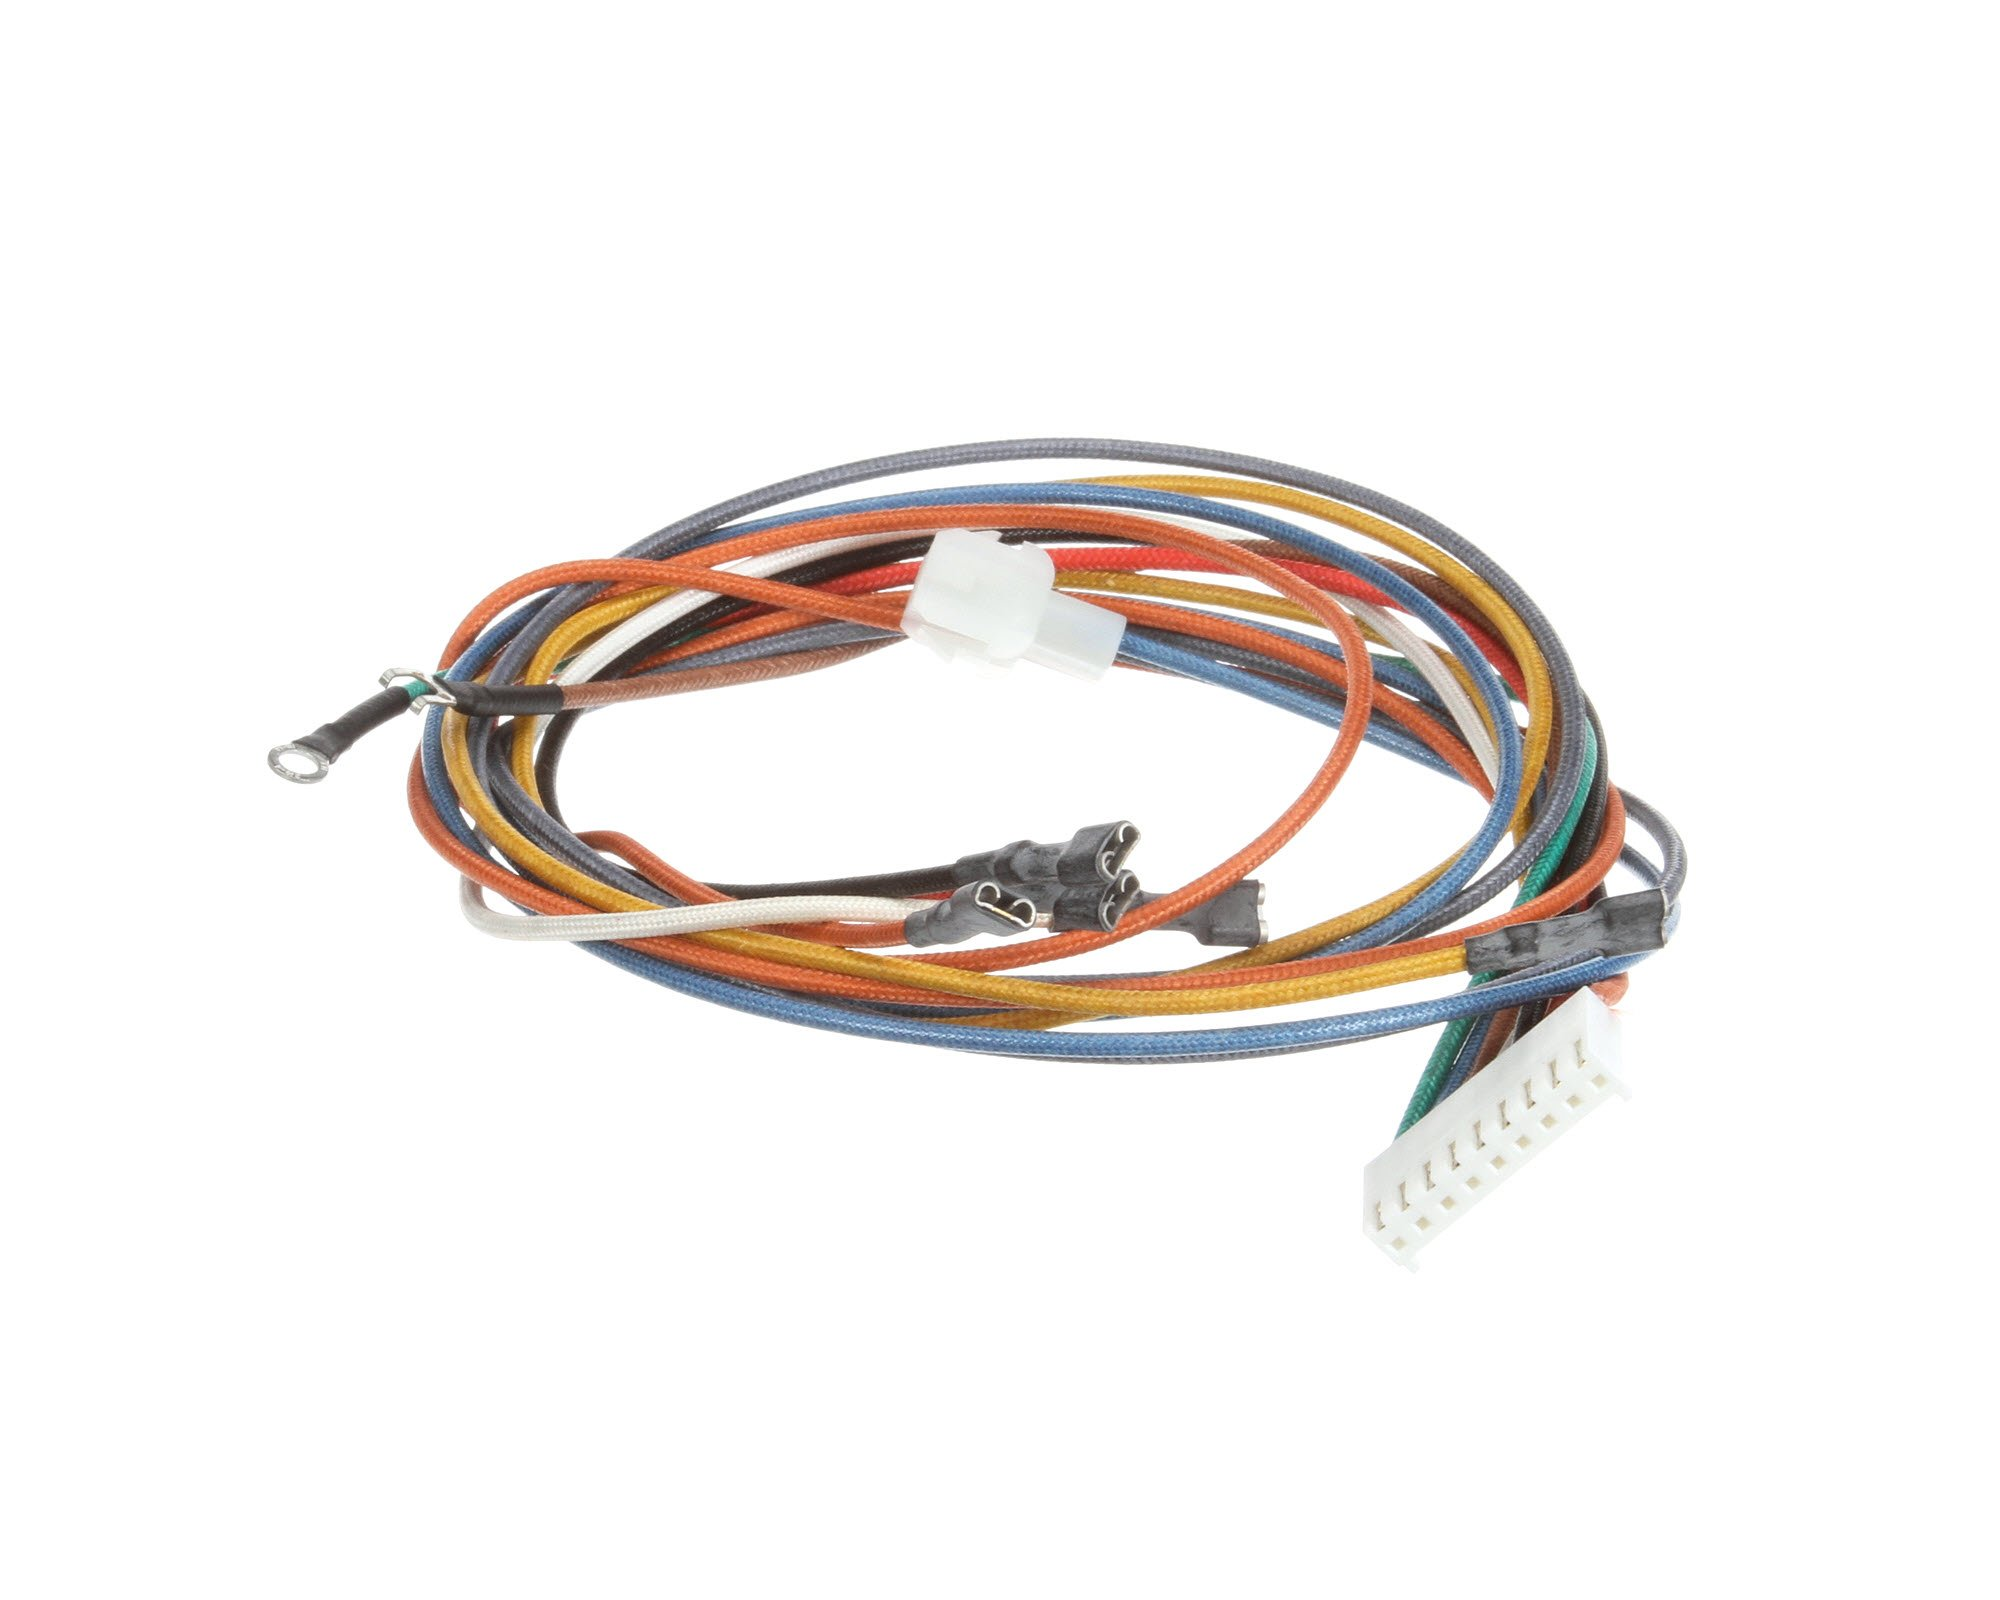 Imperial 37734 Icv-Wire Harness for Hot Surface